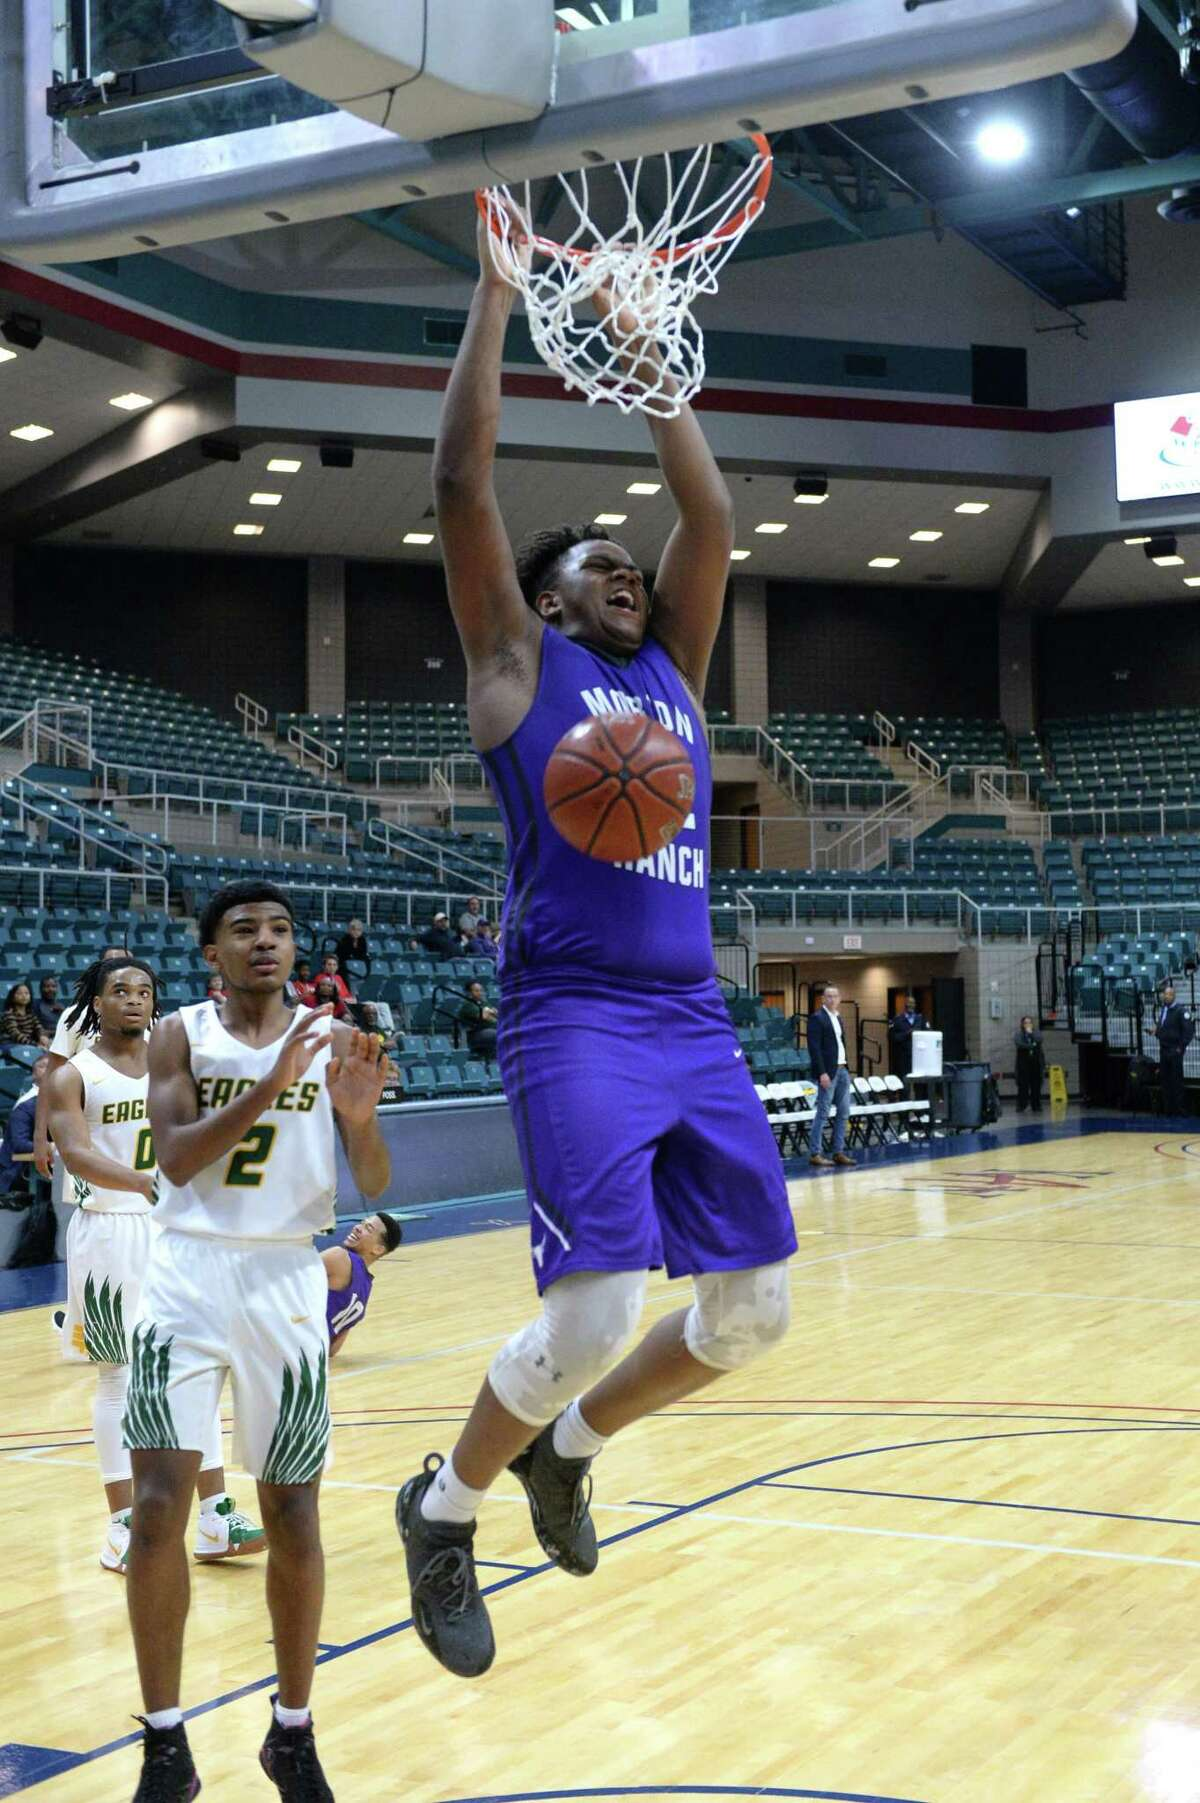 Eddie Lampkin (32) of Morton Ranch completes a slam-dunk during the second half of the Gold Bracket championship game between the Morton Ranch Mavericks and the Klein Forest Golden Eagles in the ConocoPhillips Katy ISD Classic on Saturday December 1, 2018 at the Leonard Merrell Center, Katy, TX.